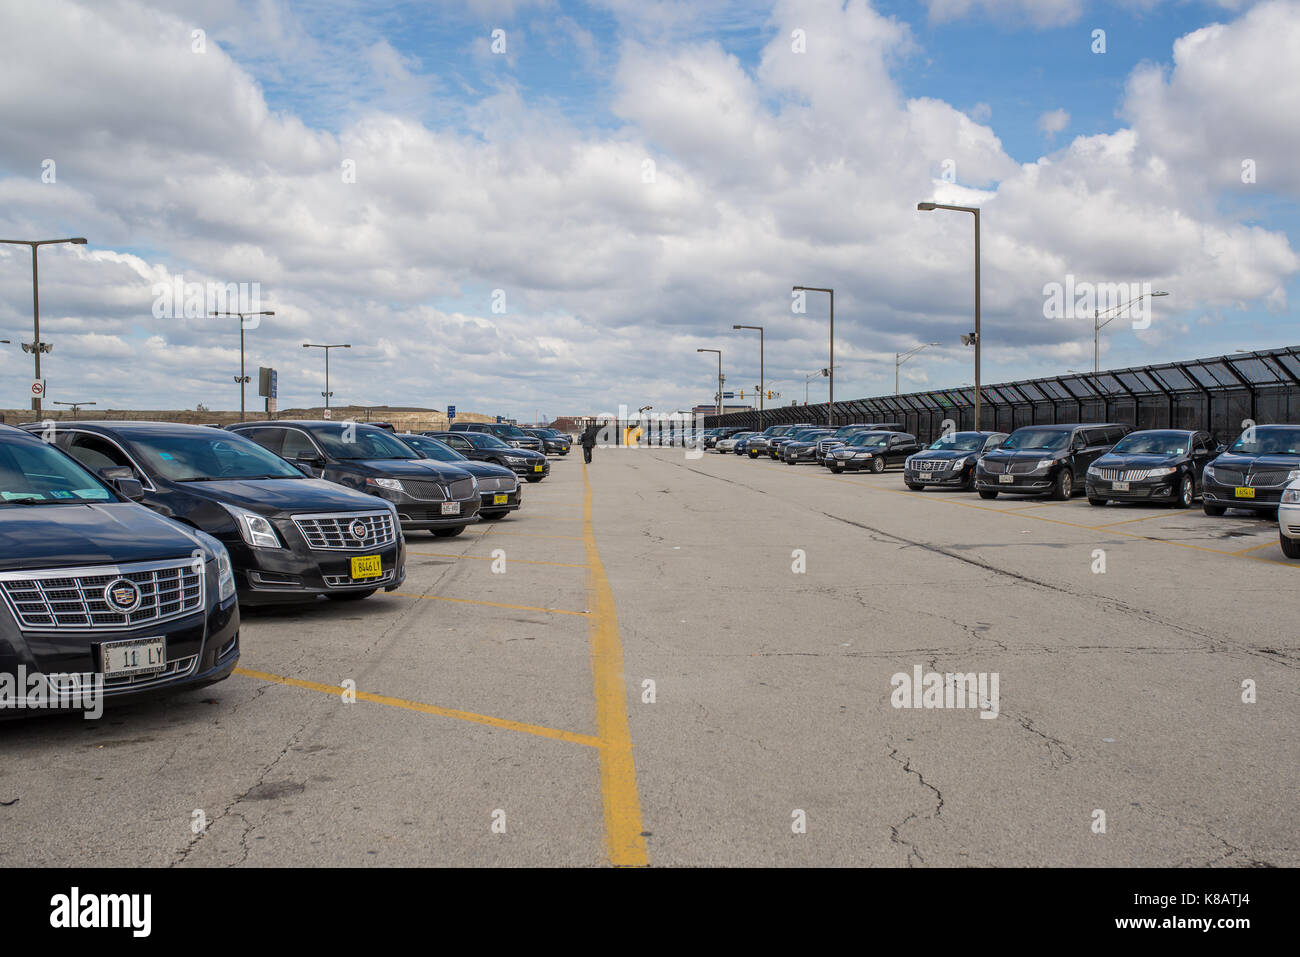 Chicago,IL,USA,April 6 2017:Limousine Parking Lot at O'Hare International Airport,for editorial use only - Stock Image